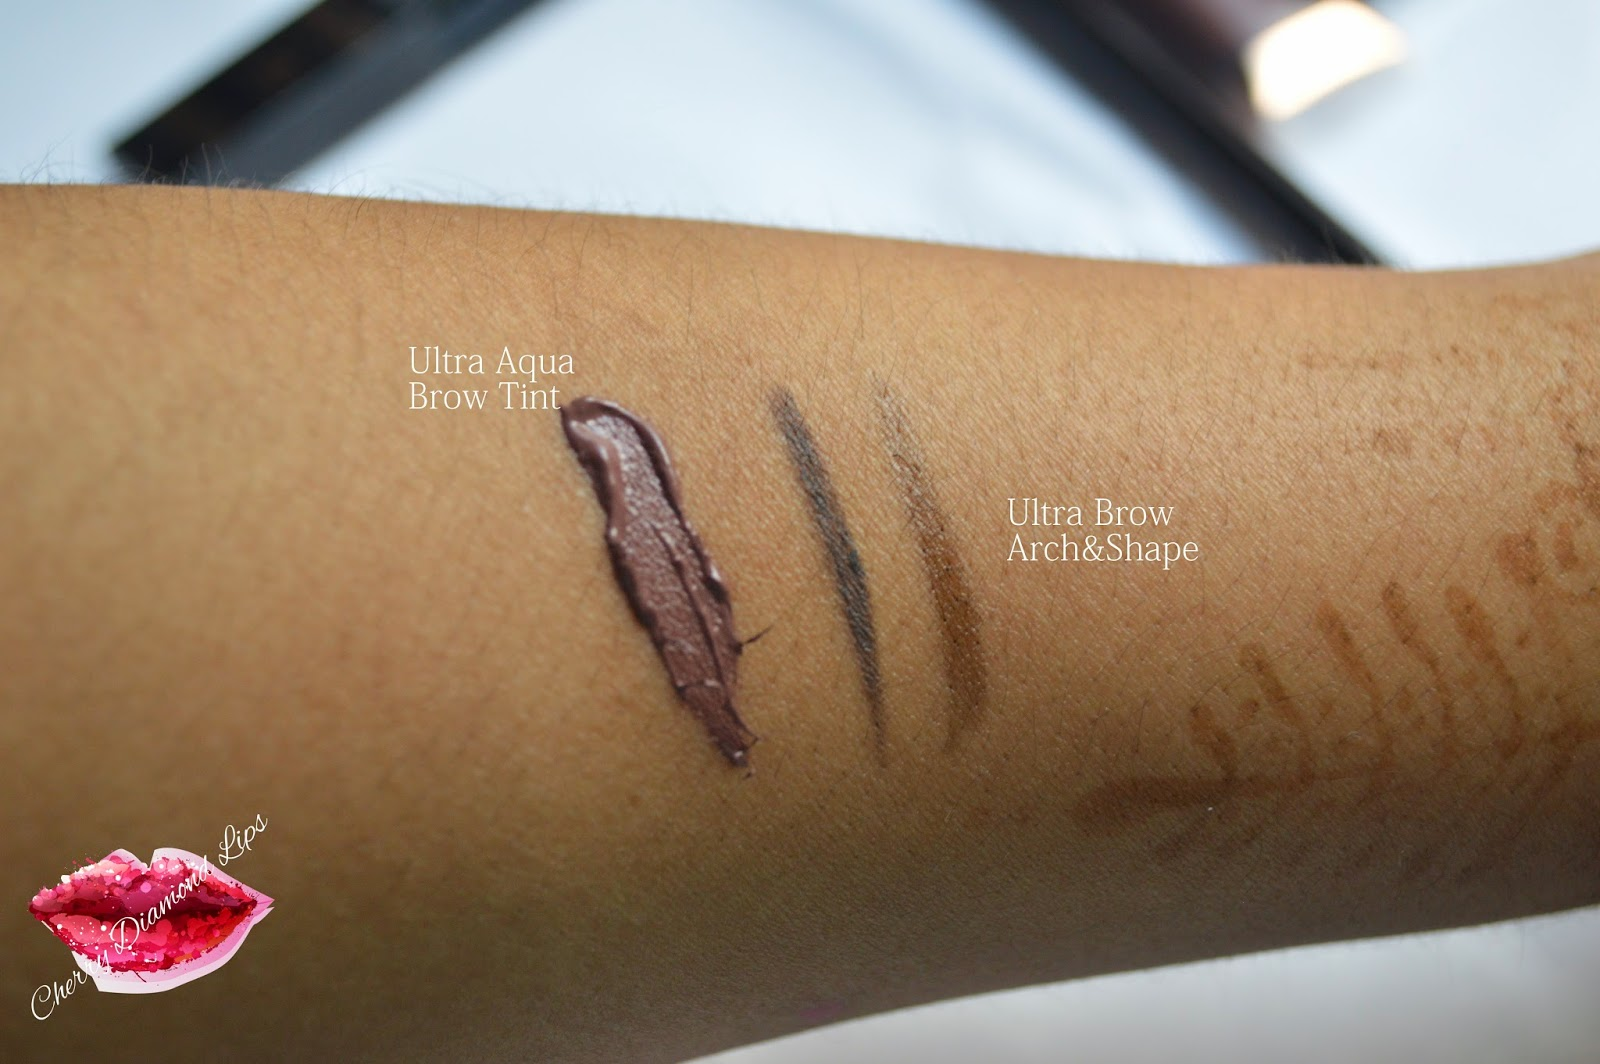 Swatches of Makeup Revolution brow products